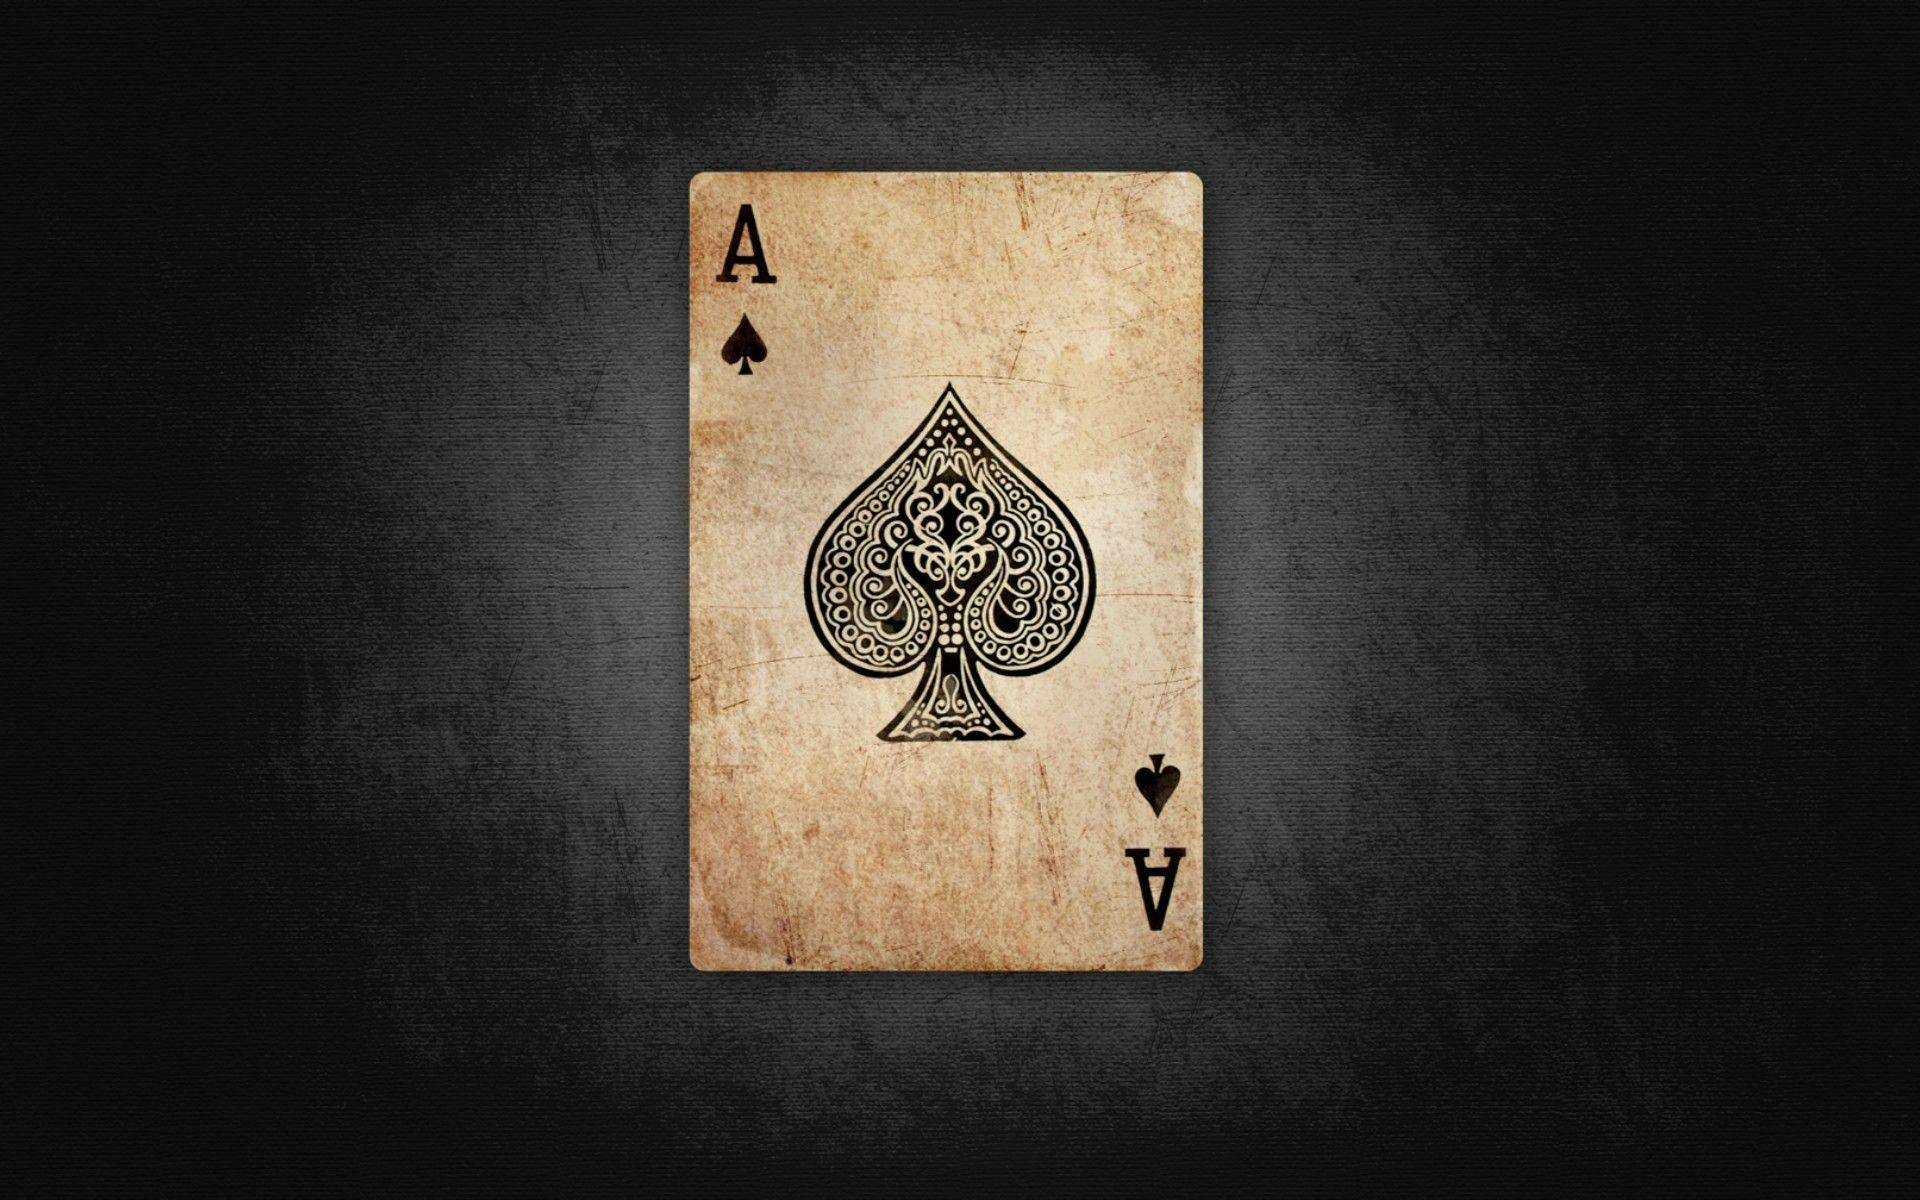 Ace of spades wallpapers wallpaper cave ace of spades wallpaper hd wallpapersafari voltagebd Images